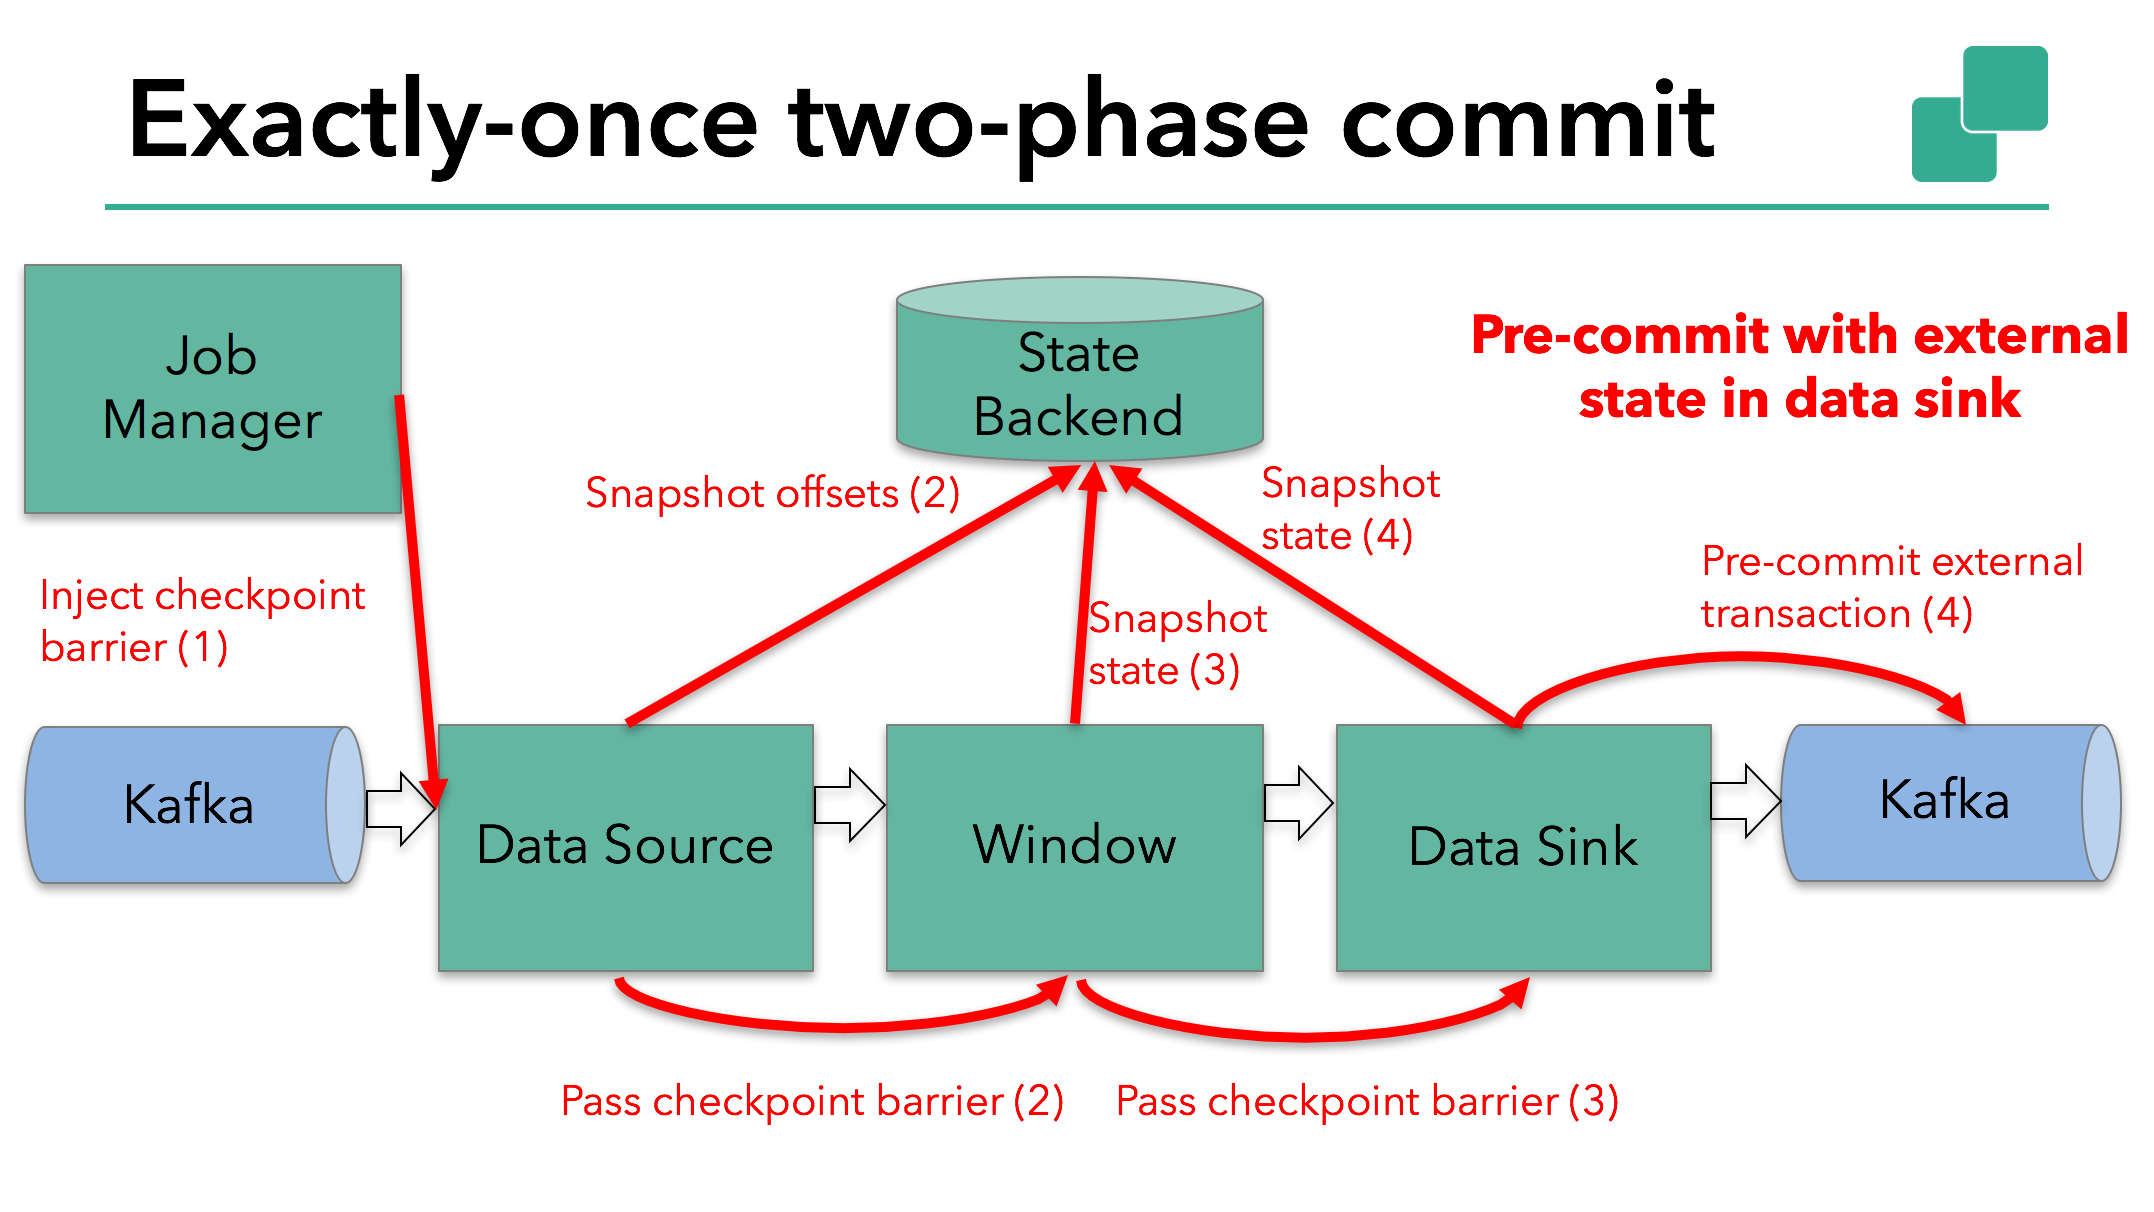 Apache Flink sample application completes pre-commit with external state